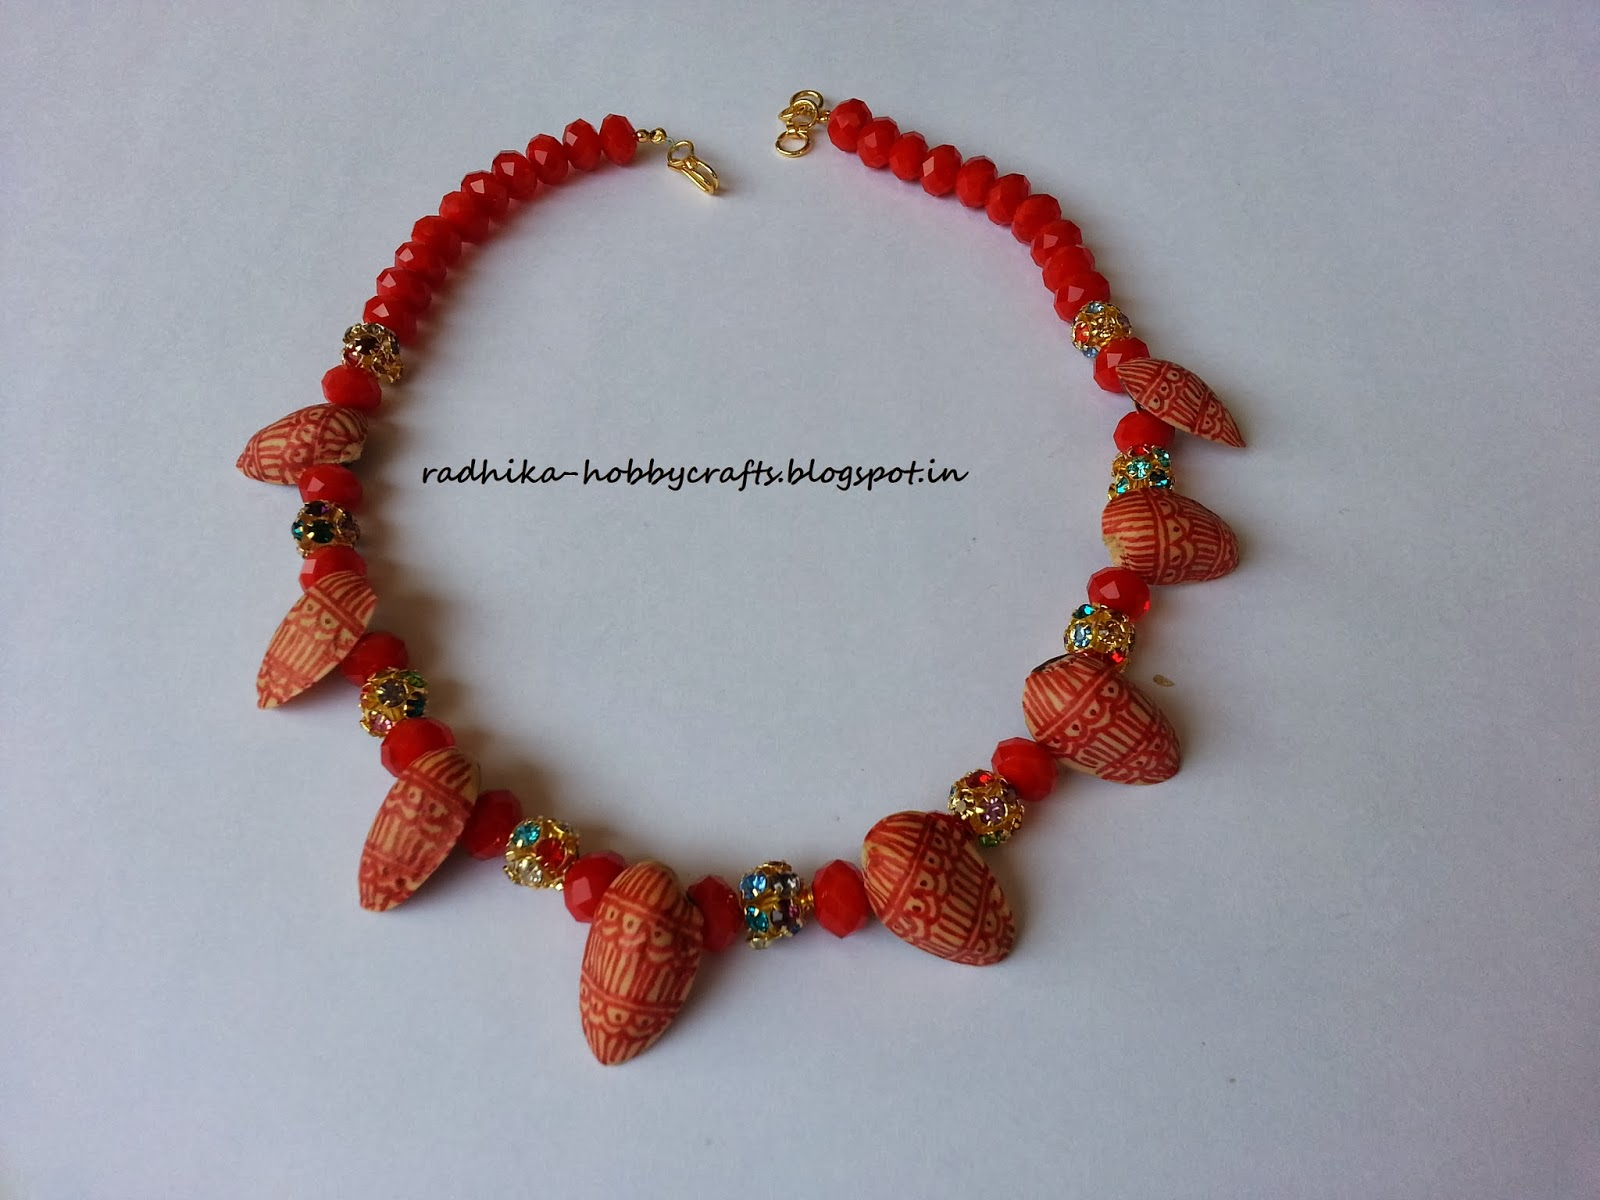 hobby crafts pistachio shell necklace